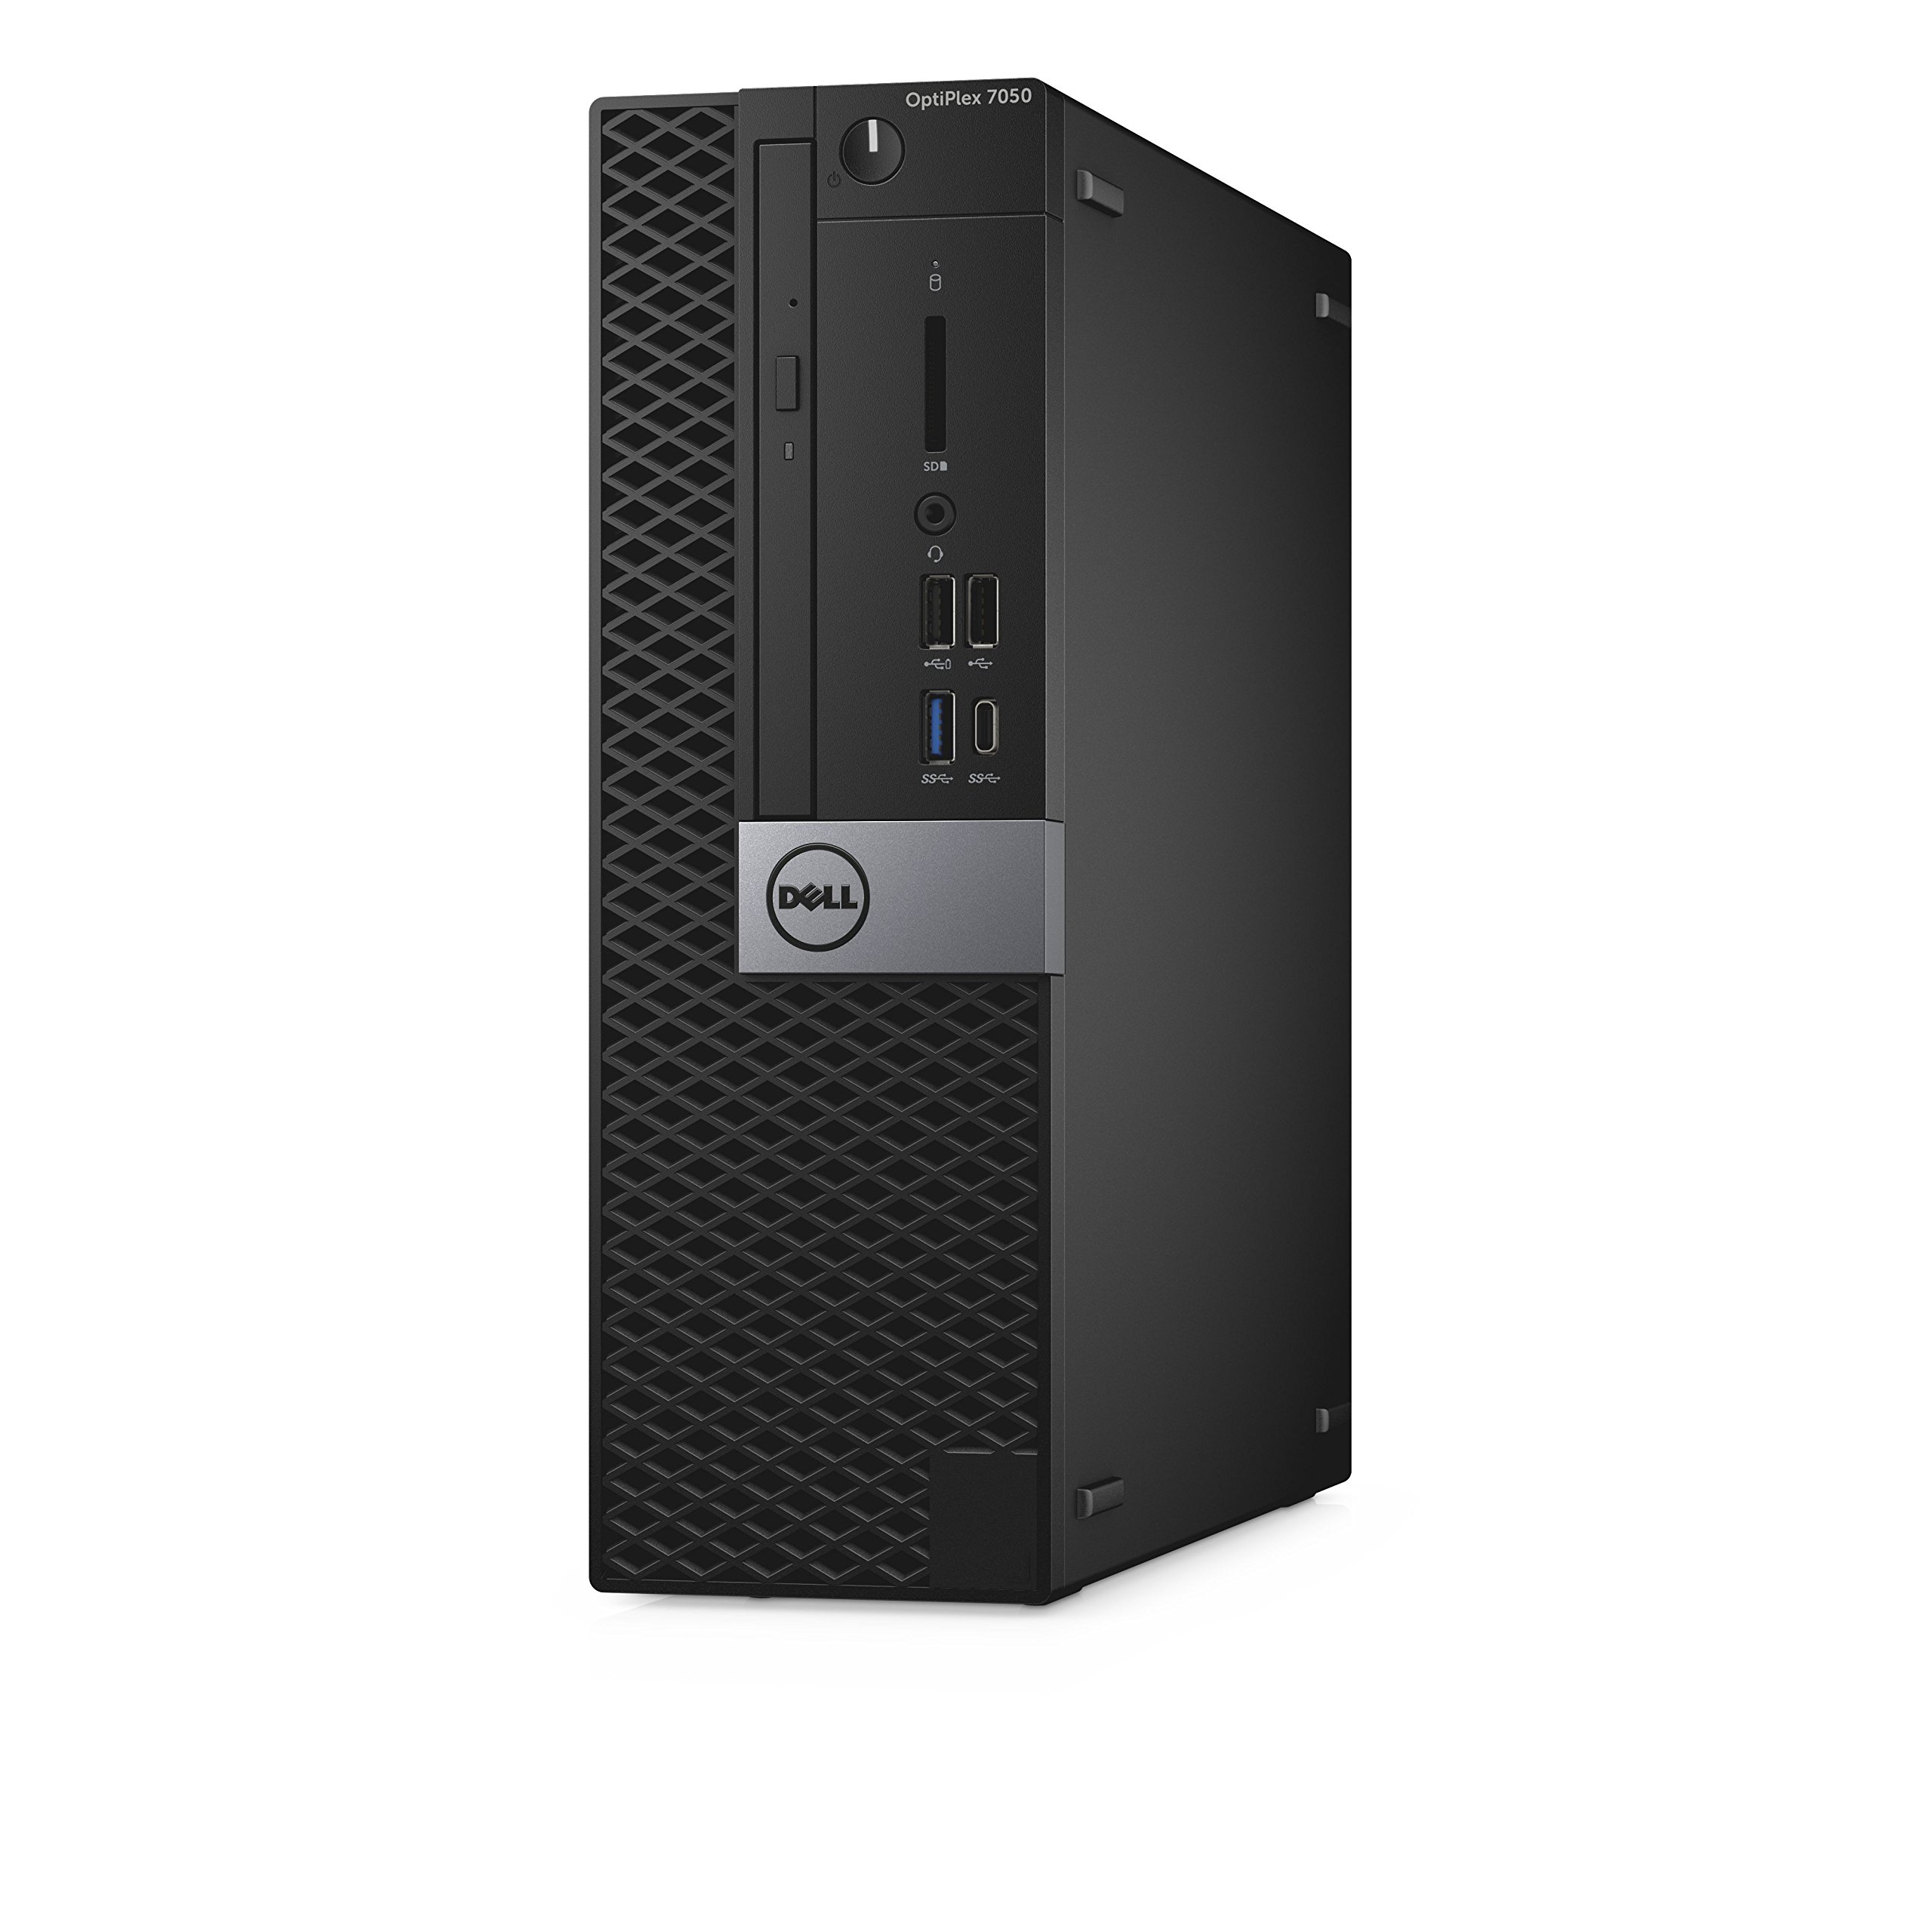 Dell OptiPlex 7050 Small Form Factor Desktop Computer, Intel Core i5-7500, 8GB DDR4, 500GB Hard Drive, Windows 10 Pro (70NRJ) by Dell